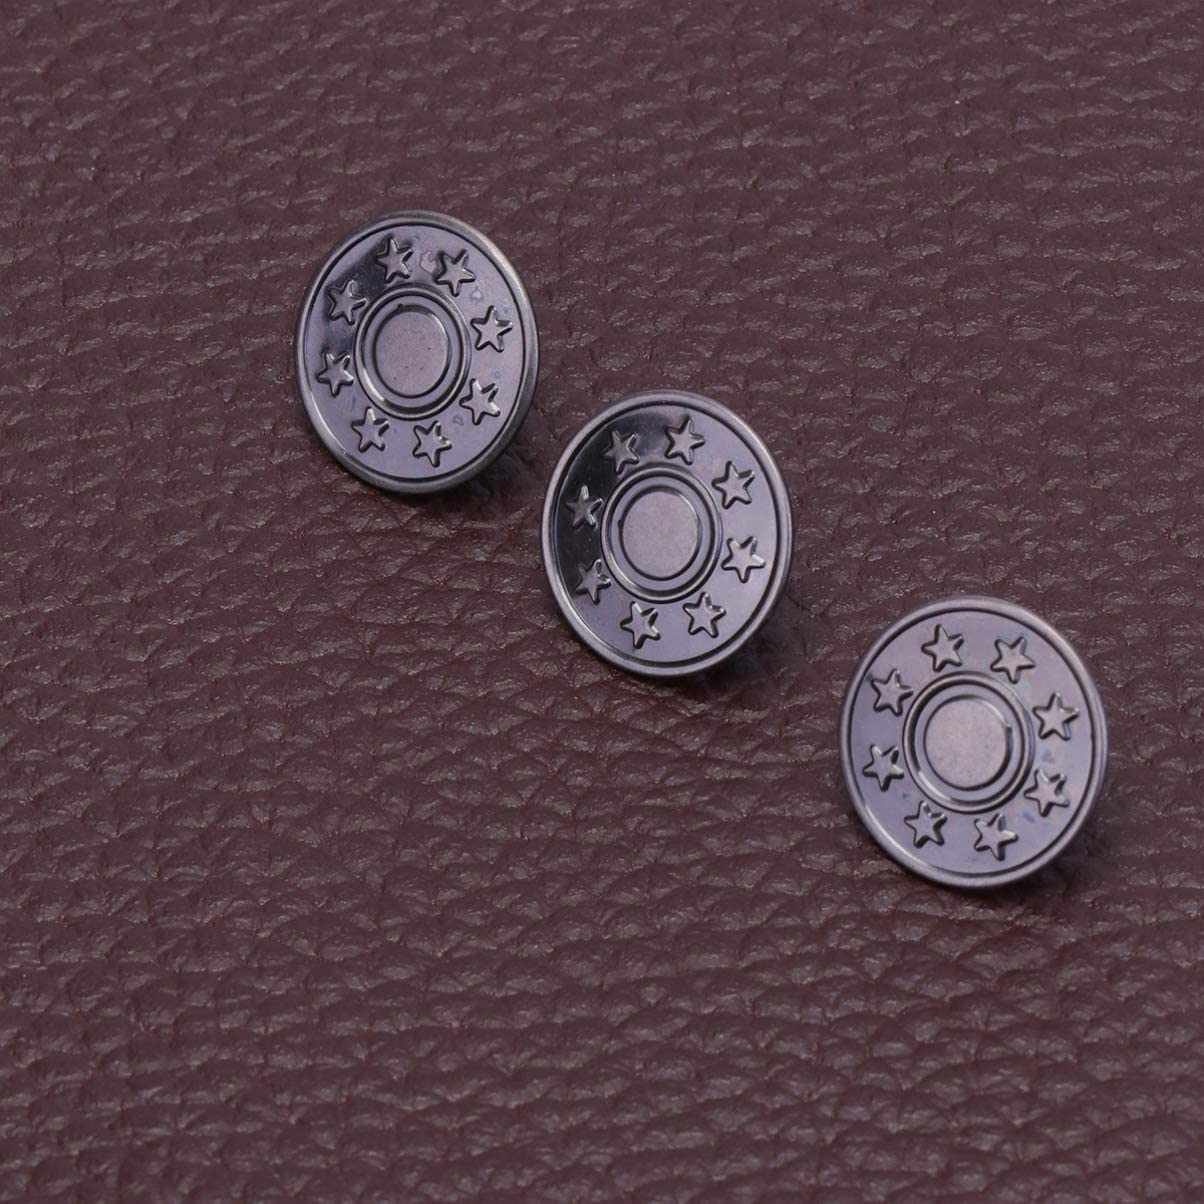 Artibetter 40 Set Jeans Button Tack Buttons Metal Replacement Jeans Button Kit Snap Buttons for Jeans Shop Home Use 17MM